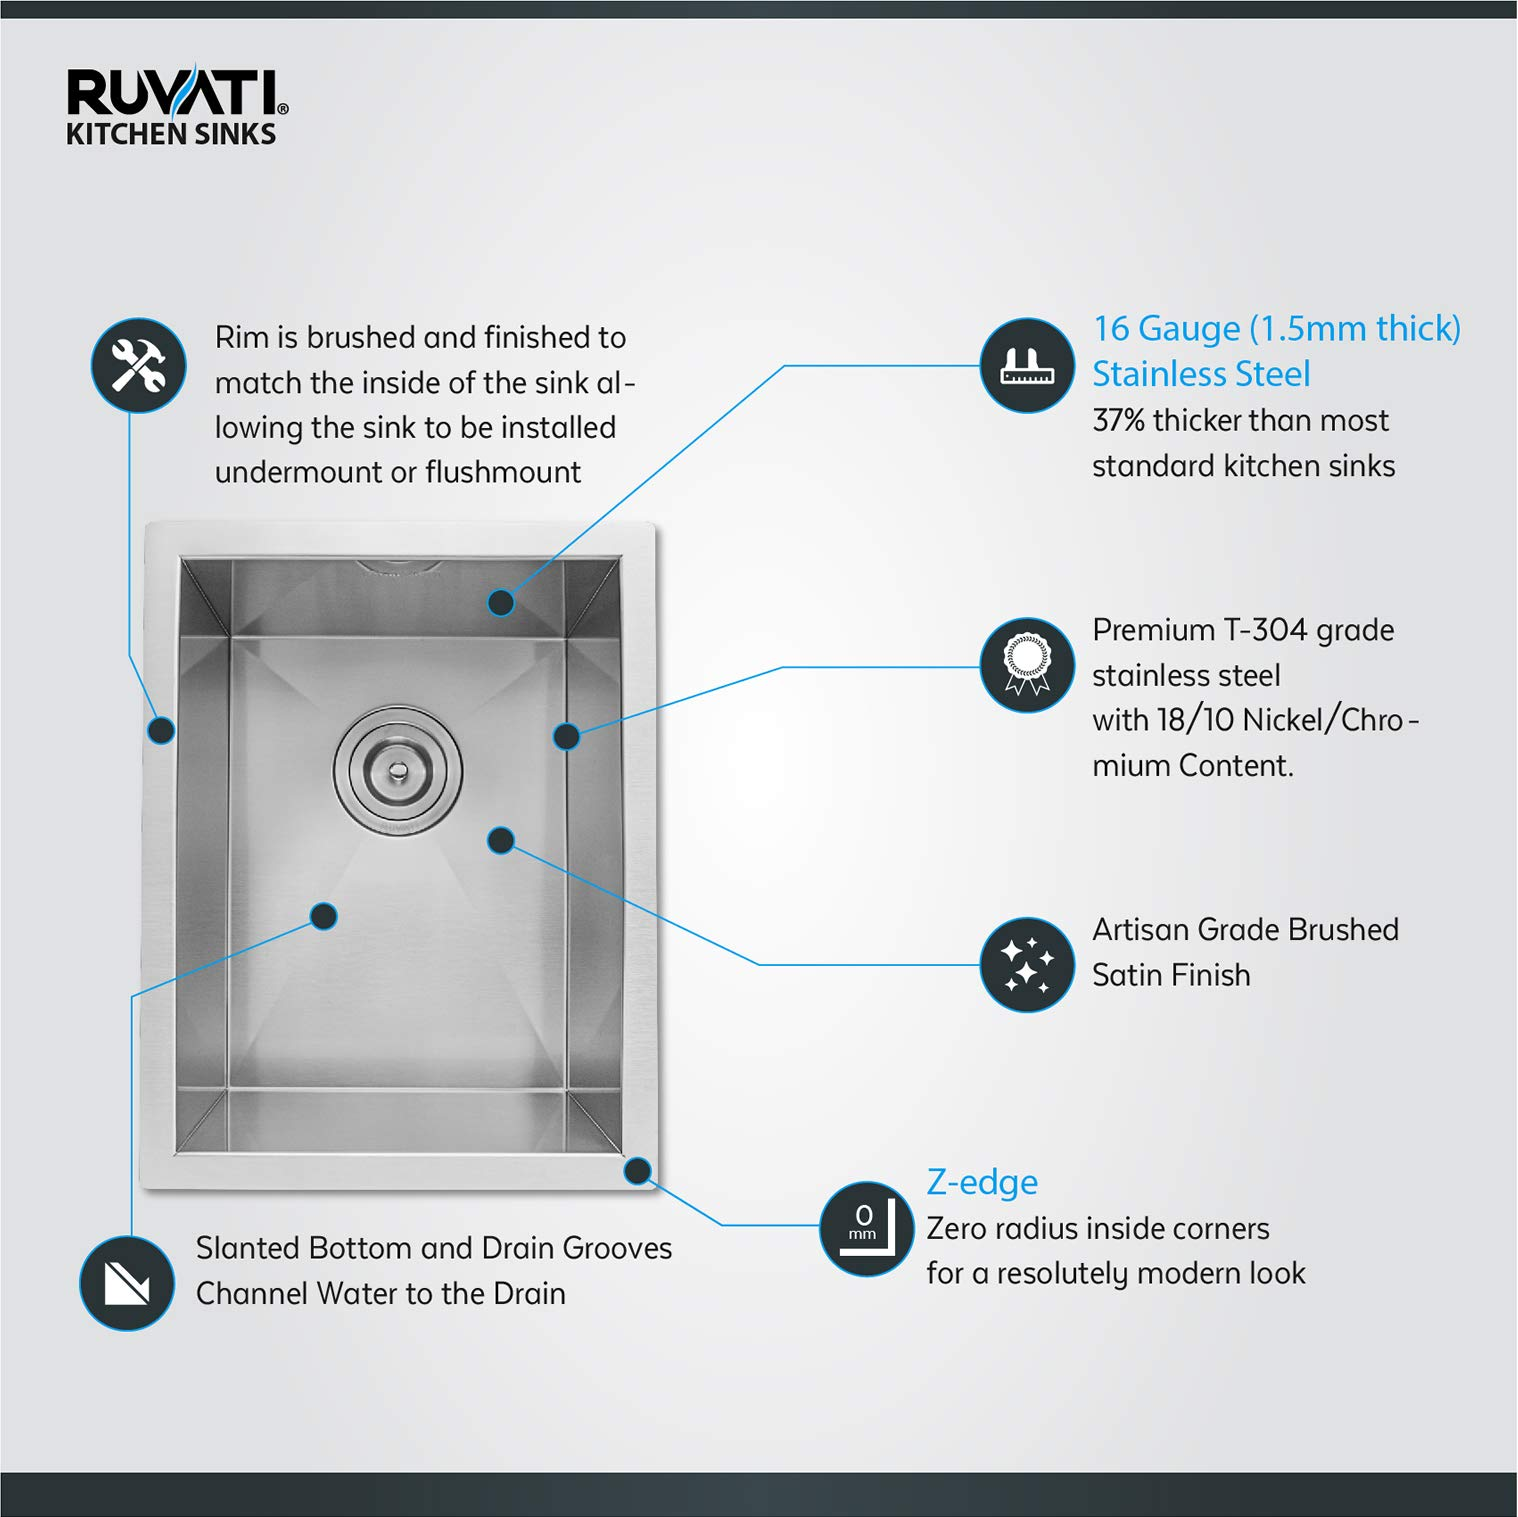 Ruvati 14-inch Undermount 16 Gauge Zero Raduis Bar Prep Kitchen Sink Stainless Steel Single Bowl - RVH7110 by Ruvati (Image #3)